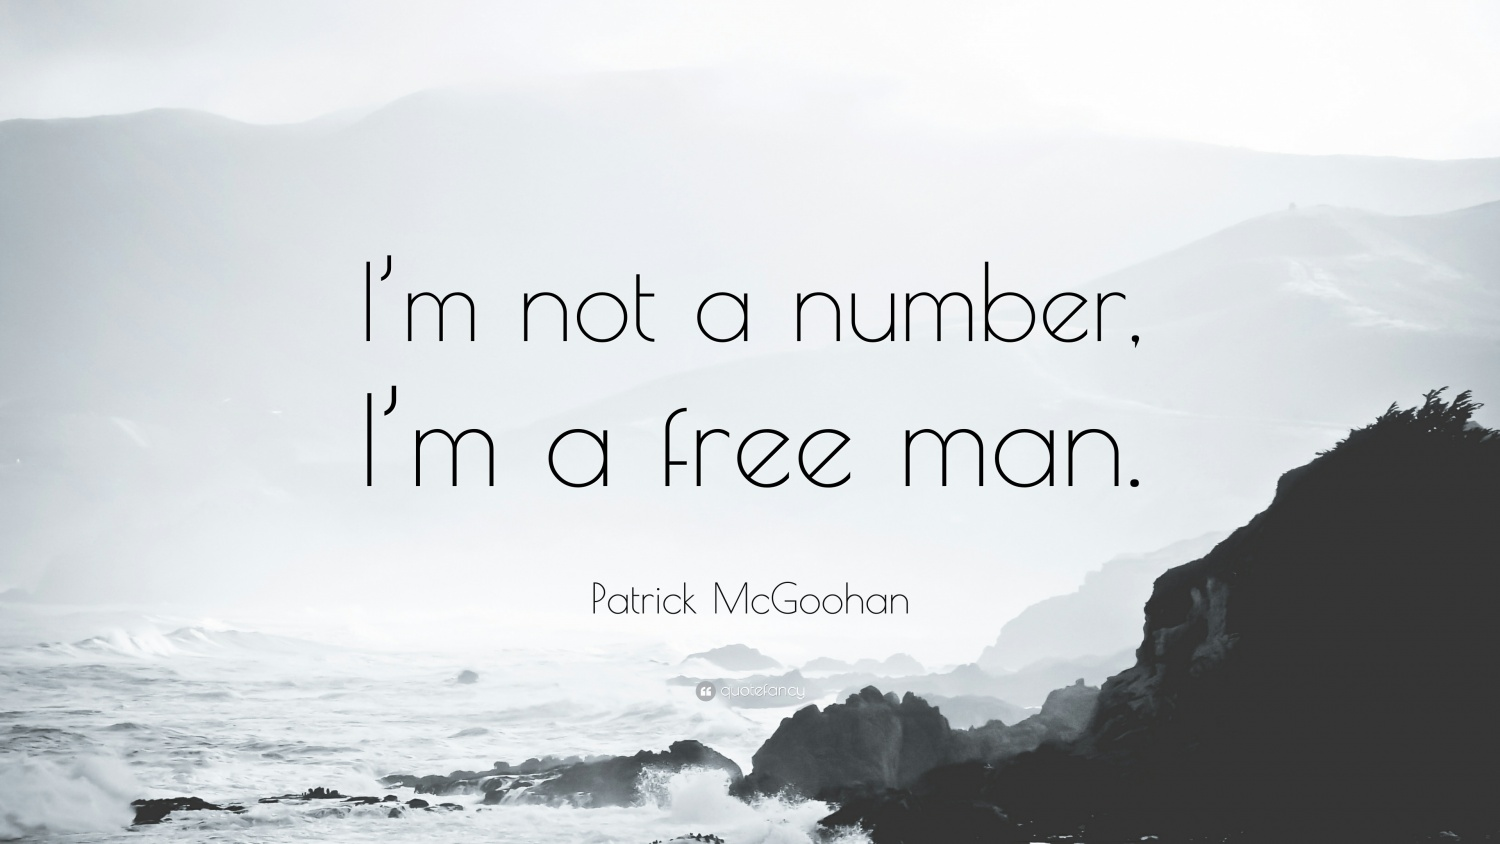 I'm not a number I'm a free man